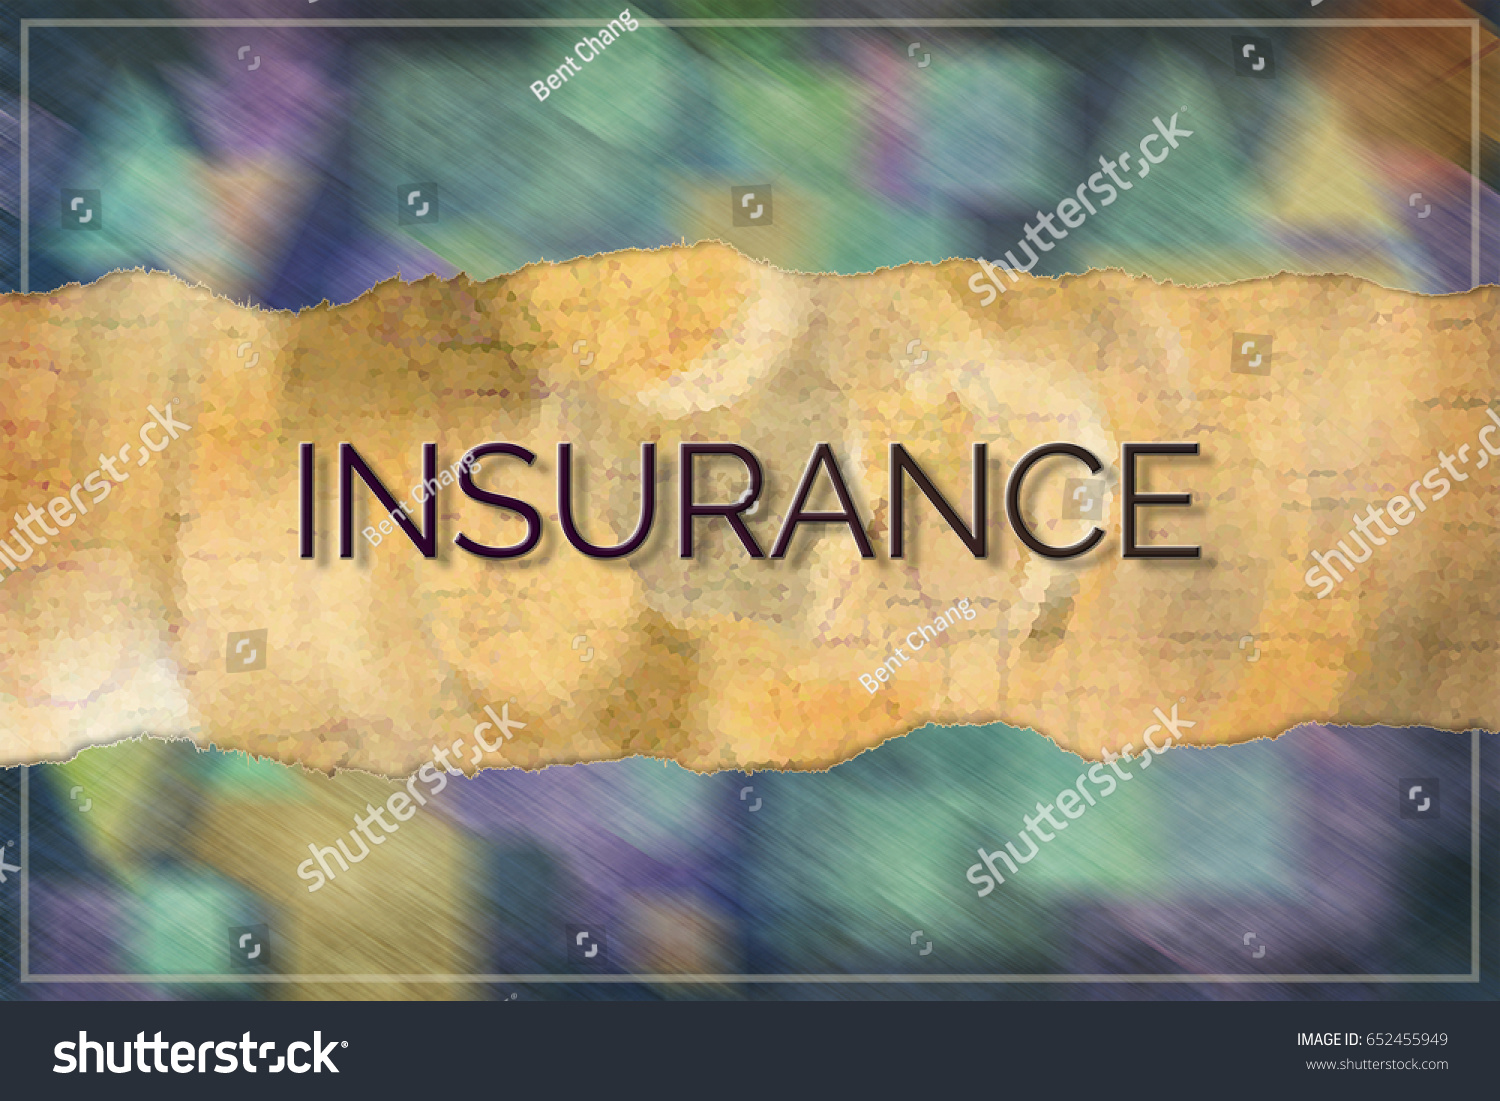 Royalty Free Stock Illustration Of Insurance Business Conceptual